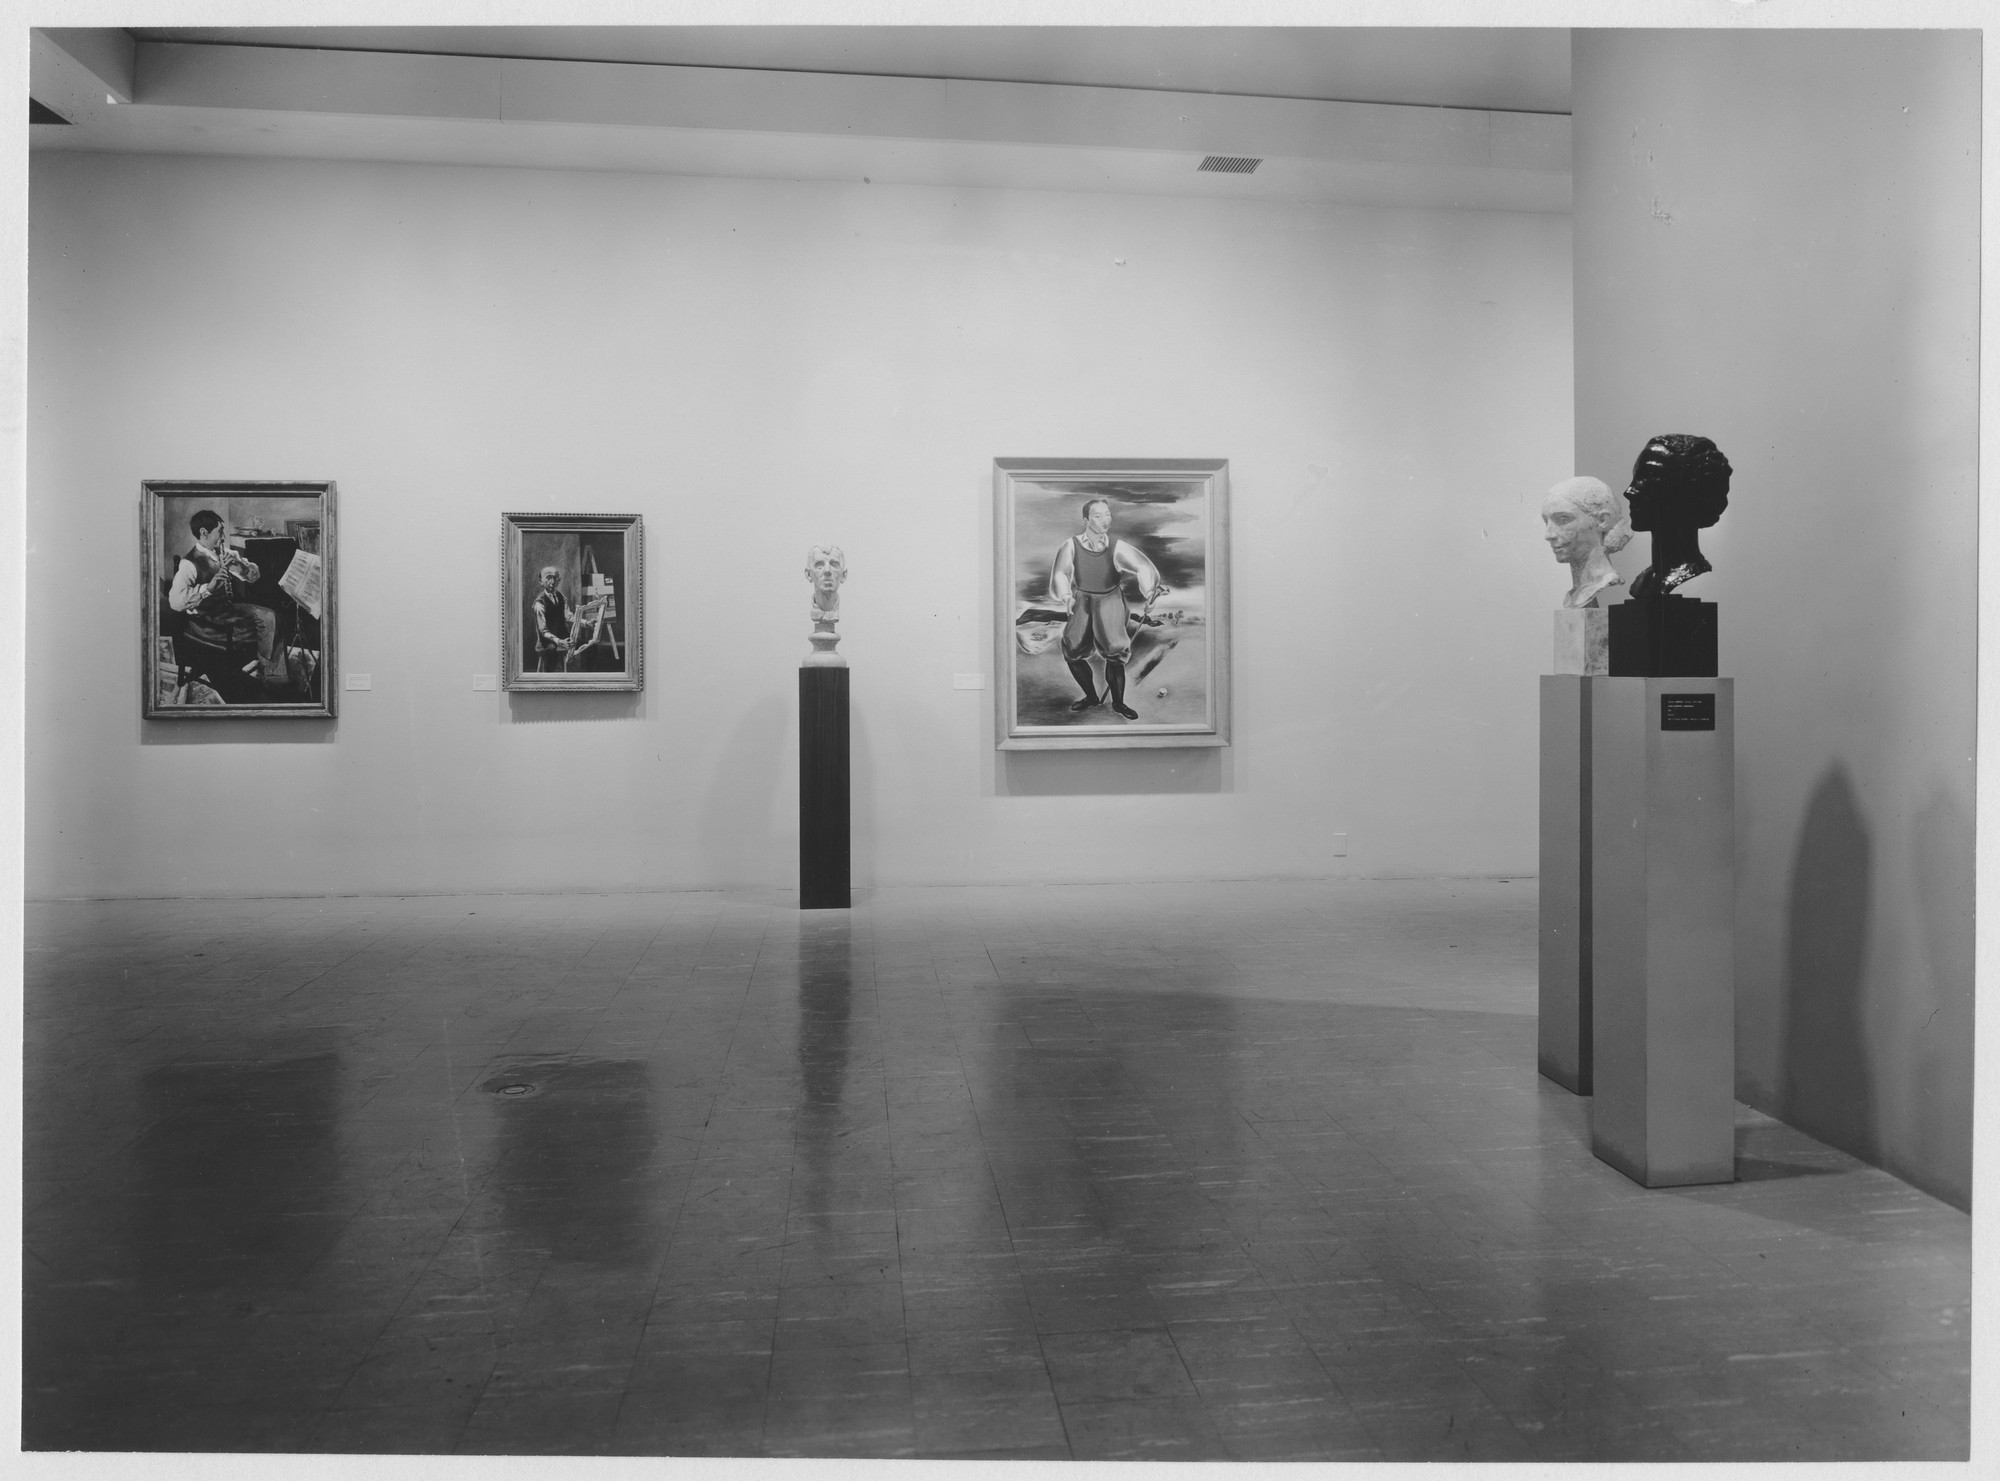 "Installation view of the exhibition, ""Portraits from the Museum Collection."" May 4, 1960–July 5, 1960 (Auditorium and First Floor); July 6, 1960–September 18, 1960 (Auditorium re-installation). Photographic Archive. The Museum of Modern Art Archives, New York. IN664.1. Photograph by Soichi Sunami."